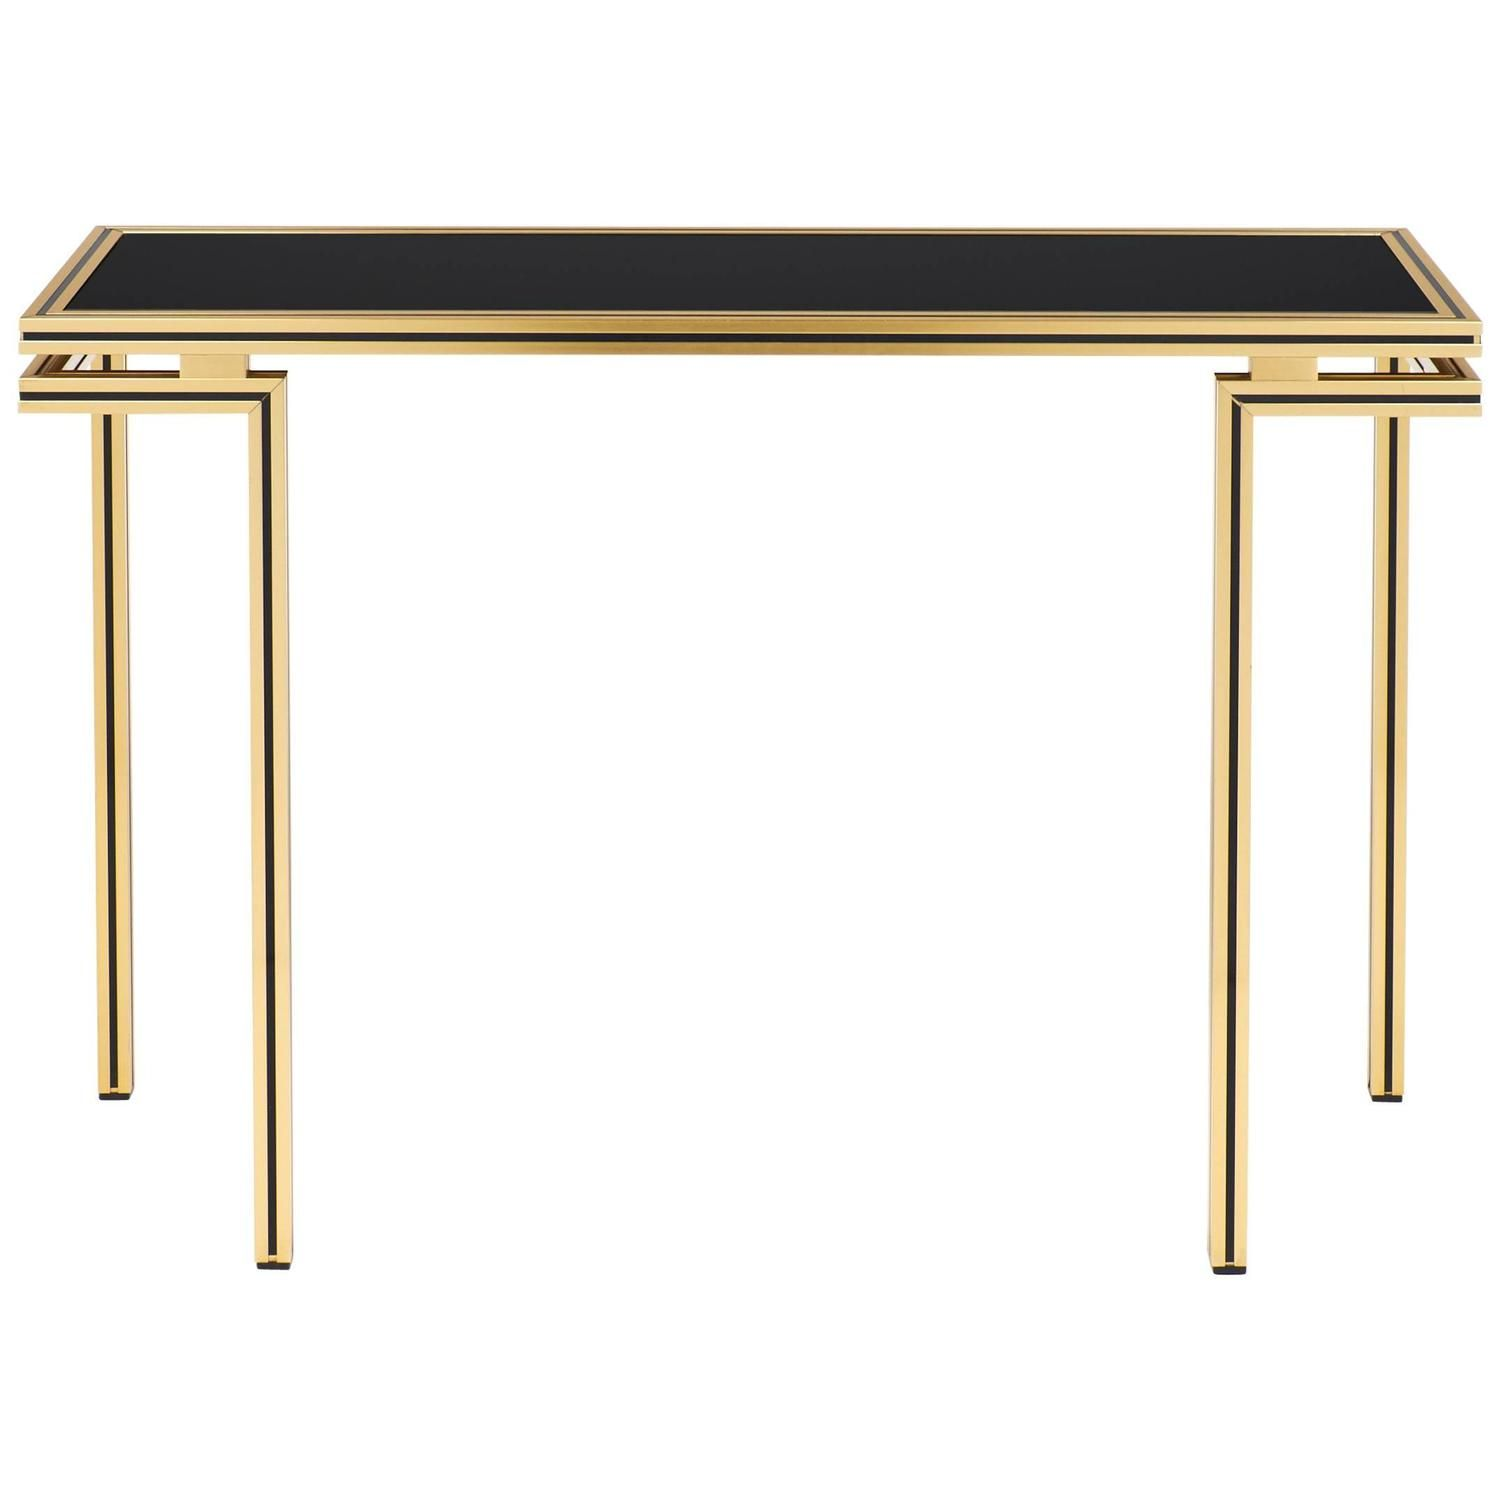 Vintage Black Glass Top Brass Console Table By Pierre Vandel 1